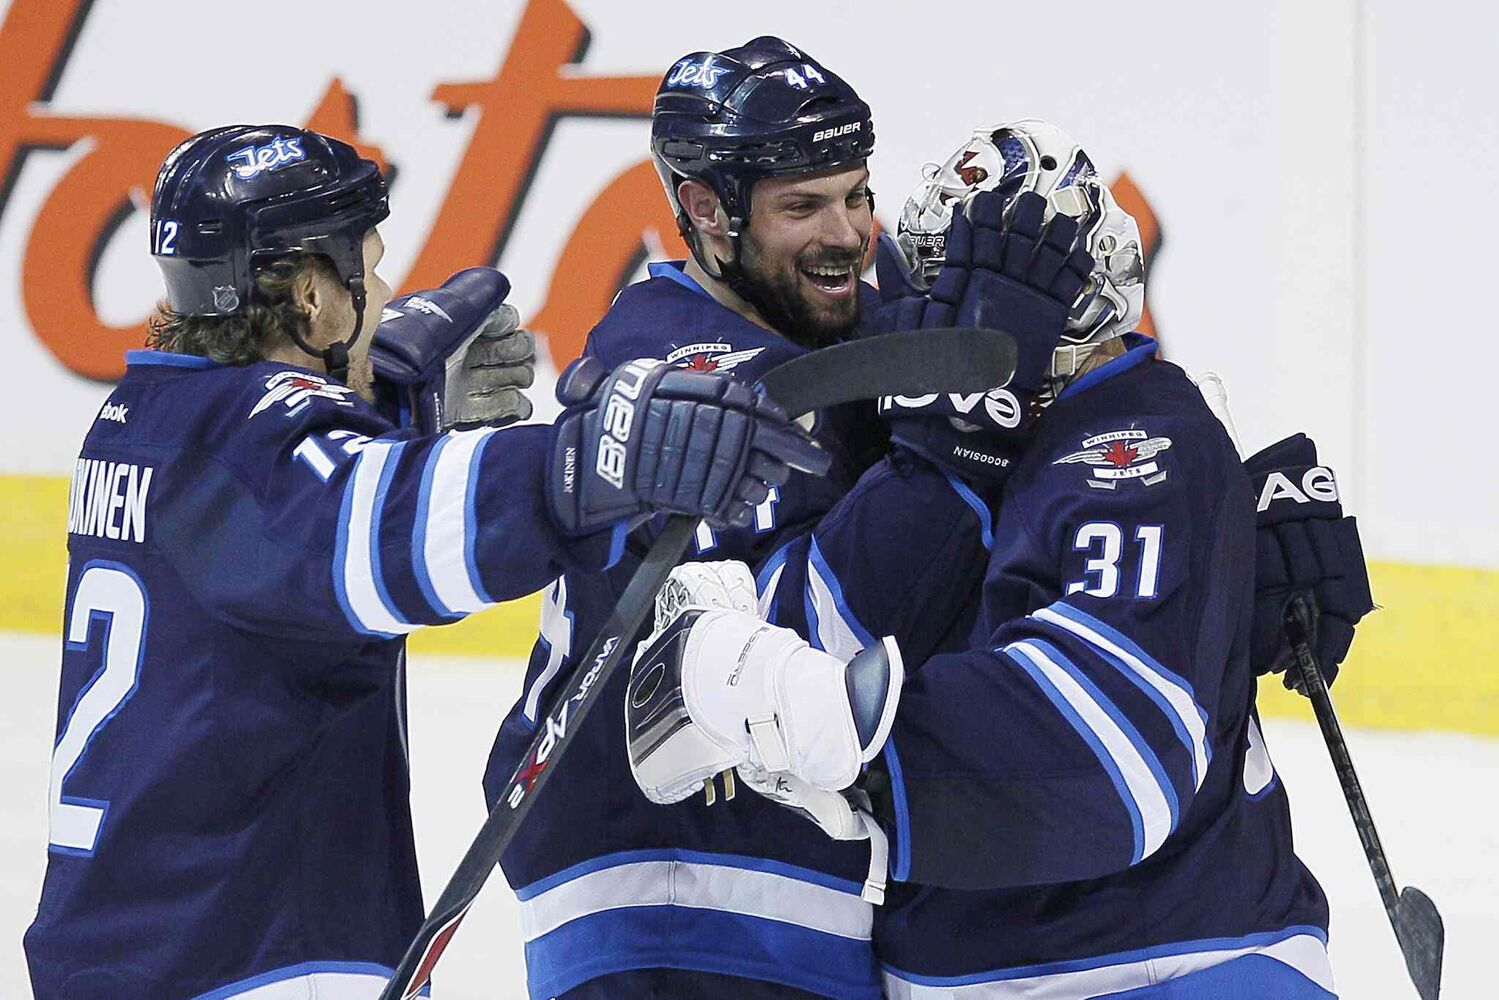 Winnipeg Jets' Olli Jokinen (12), Zach Bogosian (44), and goaltender Ondrej Pavelec (31) celebrate a win over the Phoenix Coyotes in a shoot-out during NHL action in Winnipeg on Thursday. The Jets won 3-2. (John Woods / The Canadian Press)